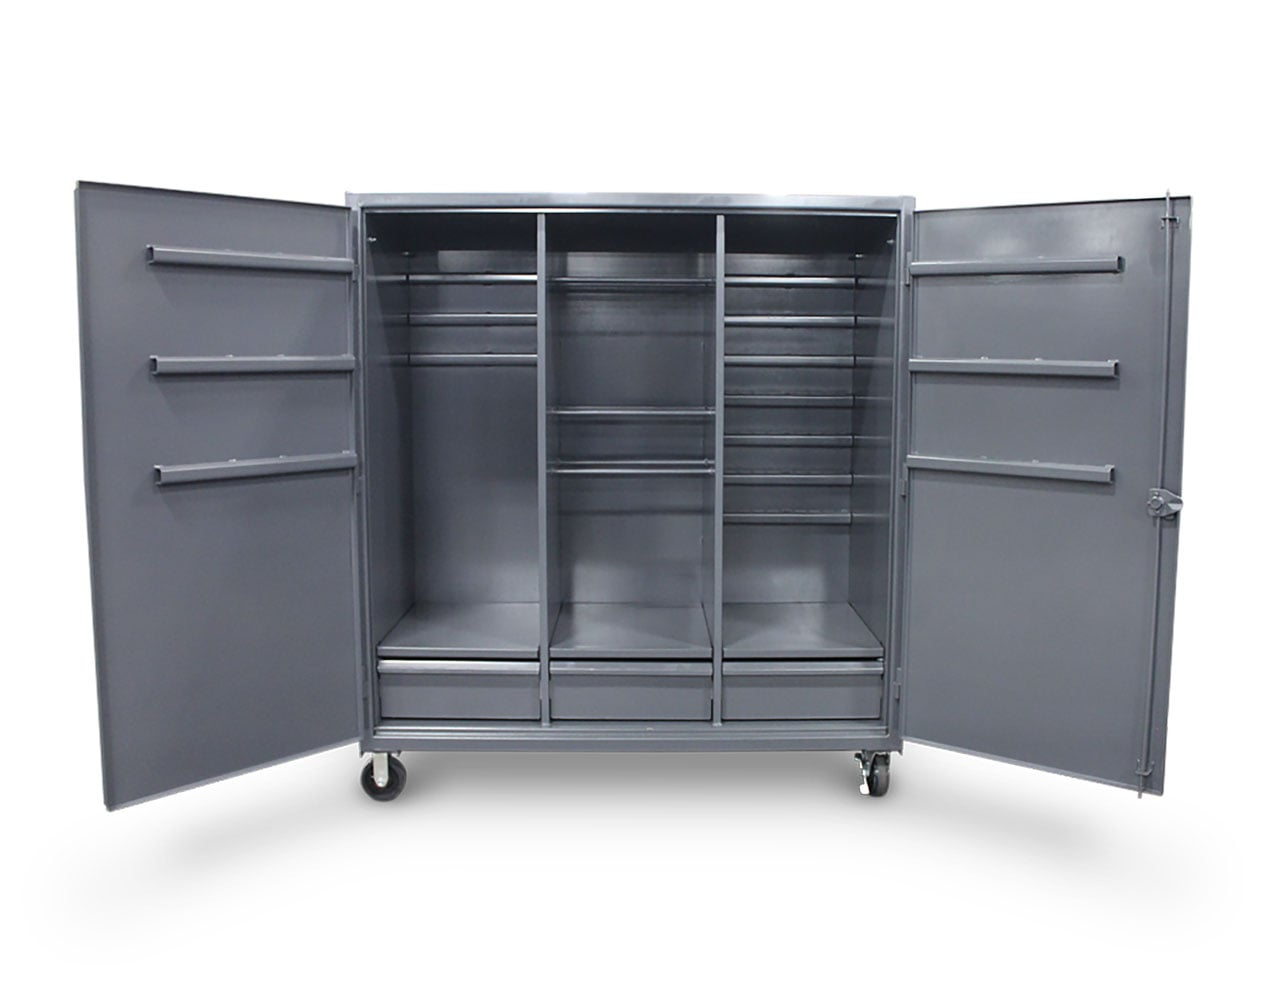 Extra Heavy Duty 12 GA Mobile Cabinet with Welded Hooks, 3 Drawers, Hanger Rods – 72 in. W x 30 in. D x 80 in. H